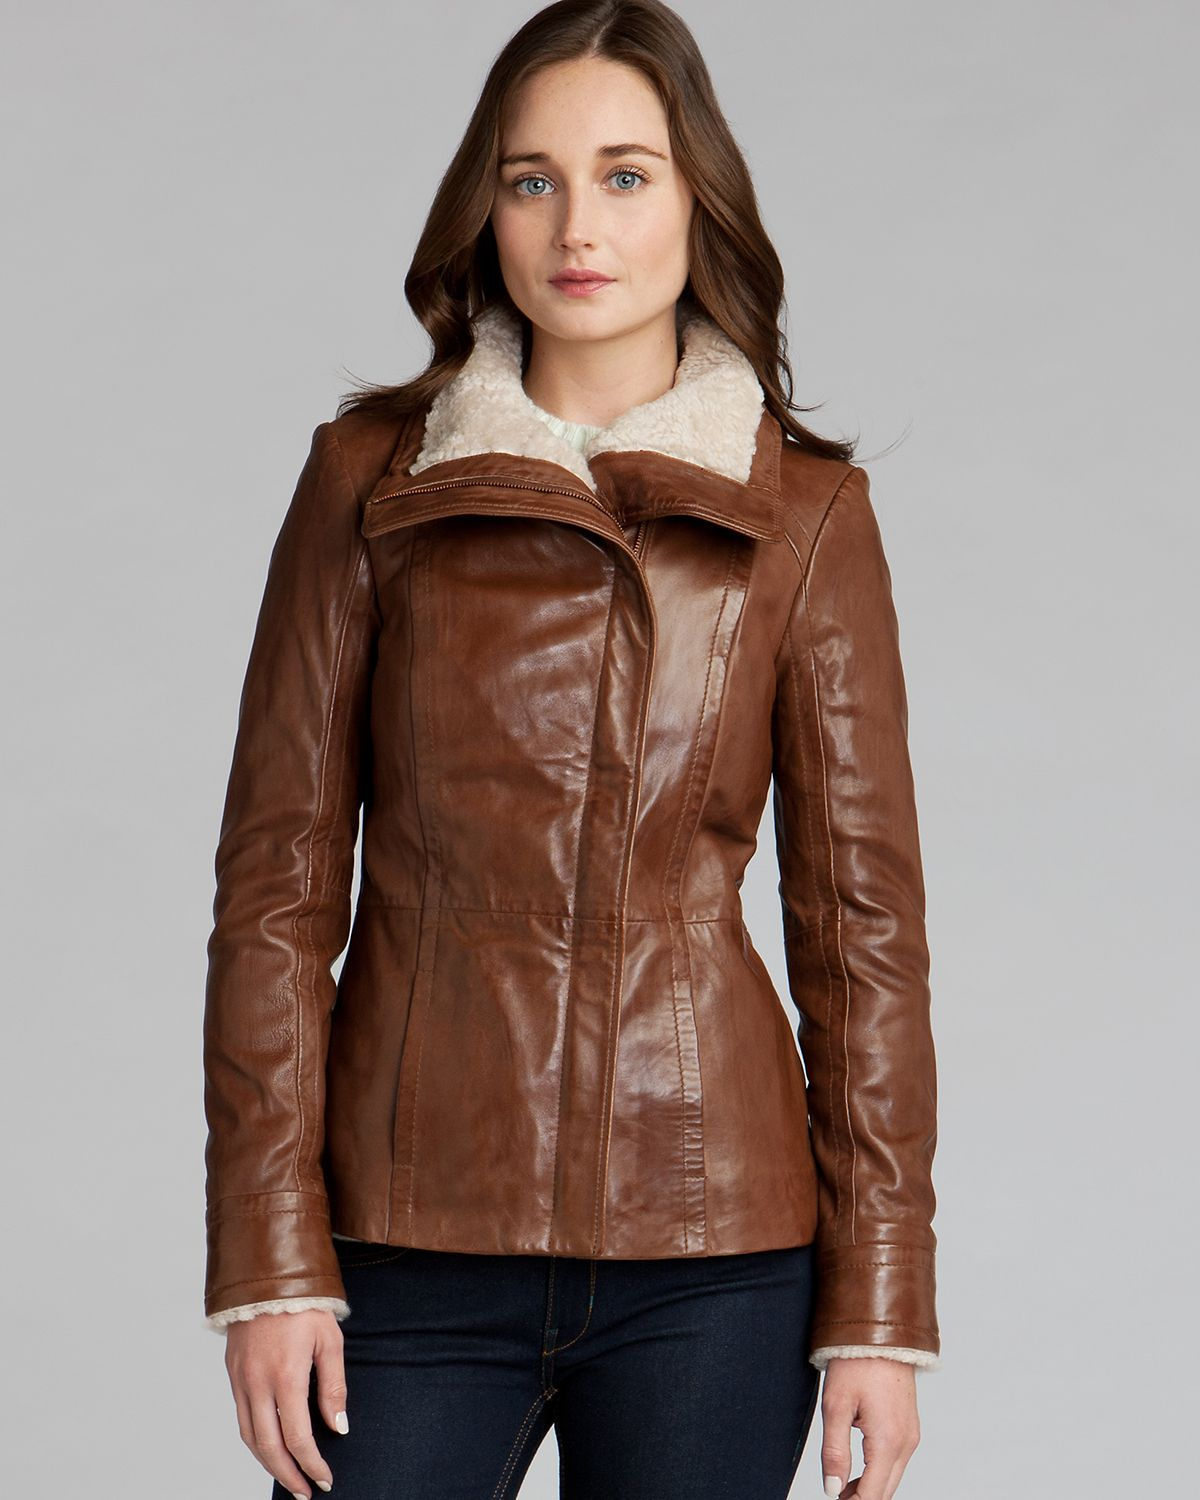 Ted baker Leather Jacket Amilia Shearling Collar in Brown | Lyst